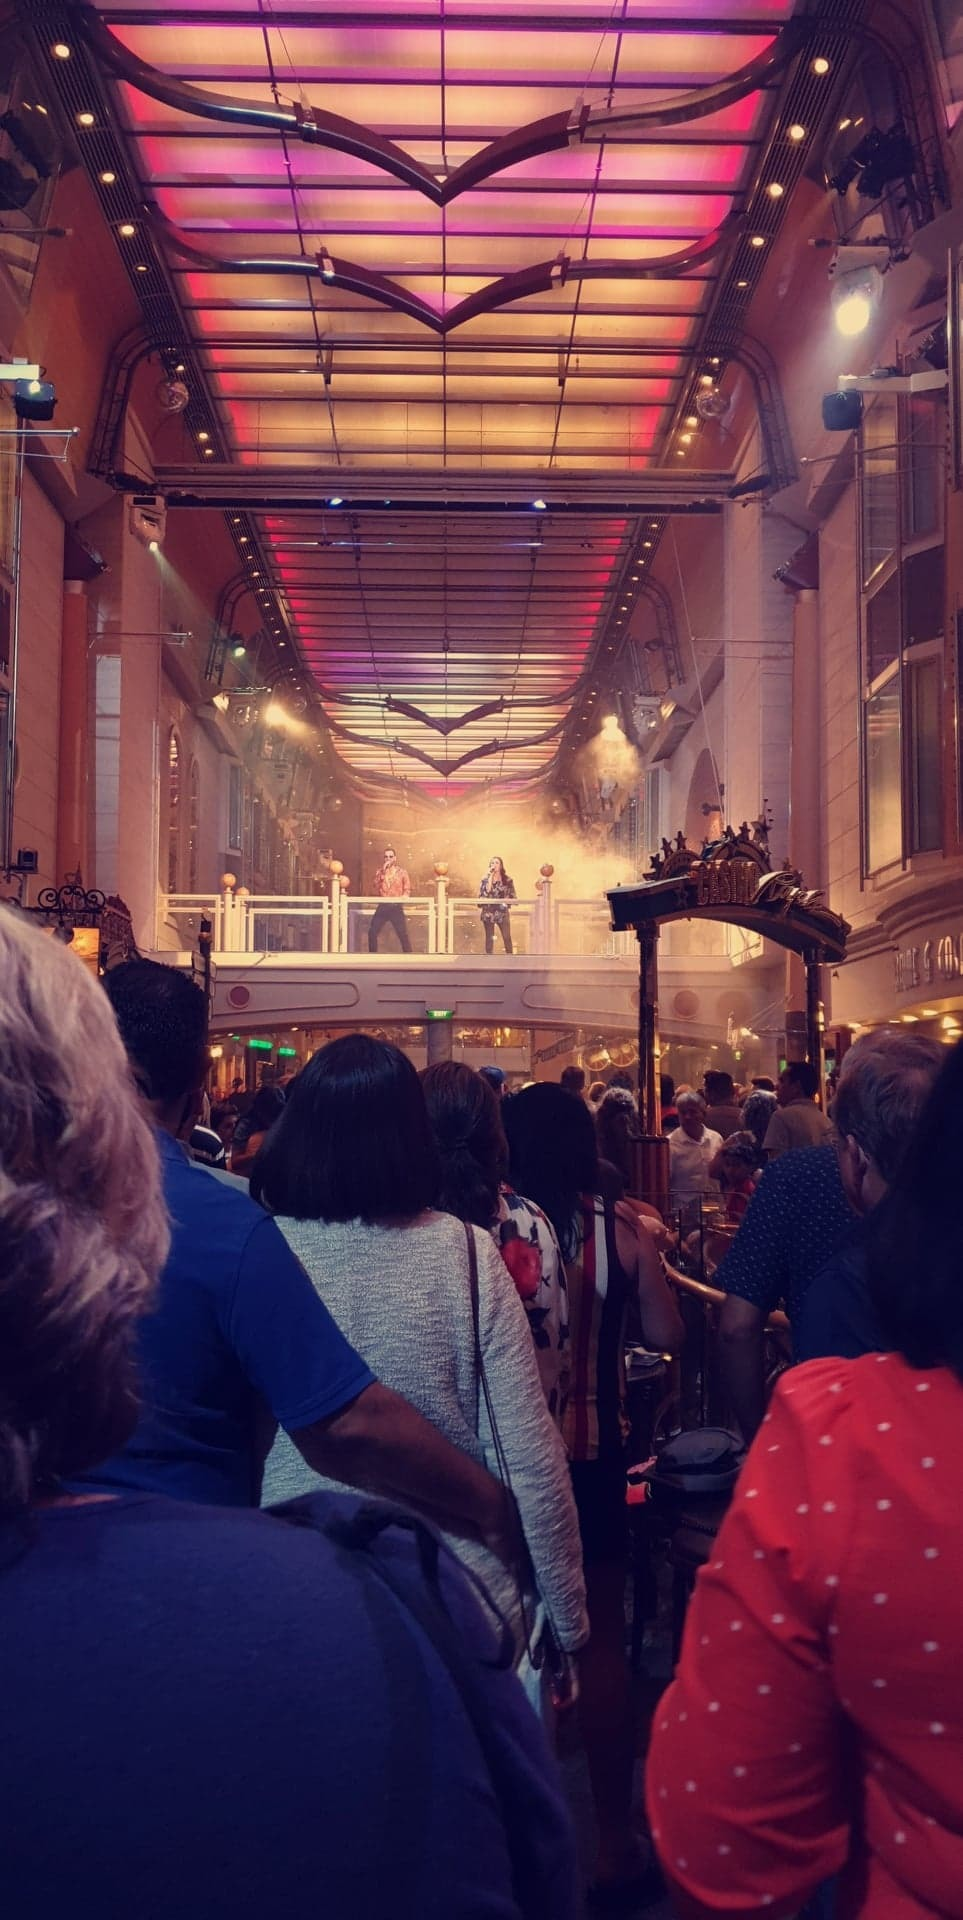 70's Night on the ship had a great performance in the Royal Promenade